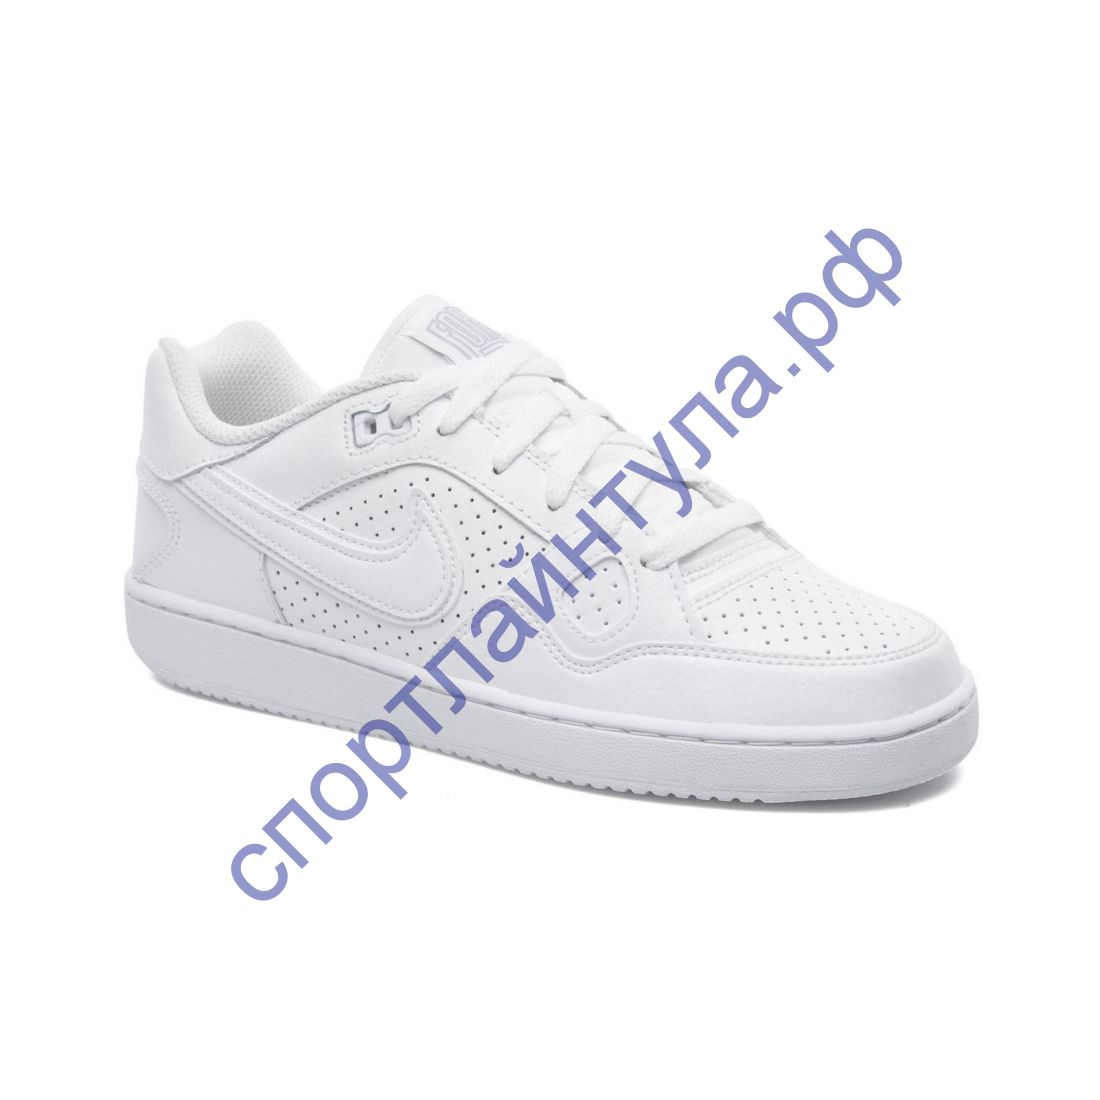 Nike Son Of Force 616775-101